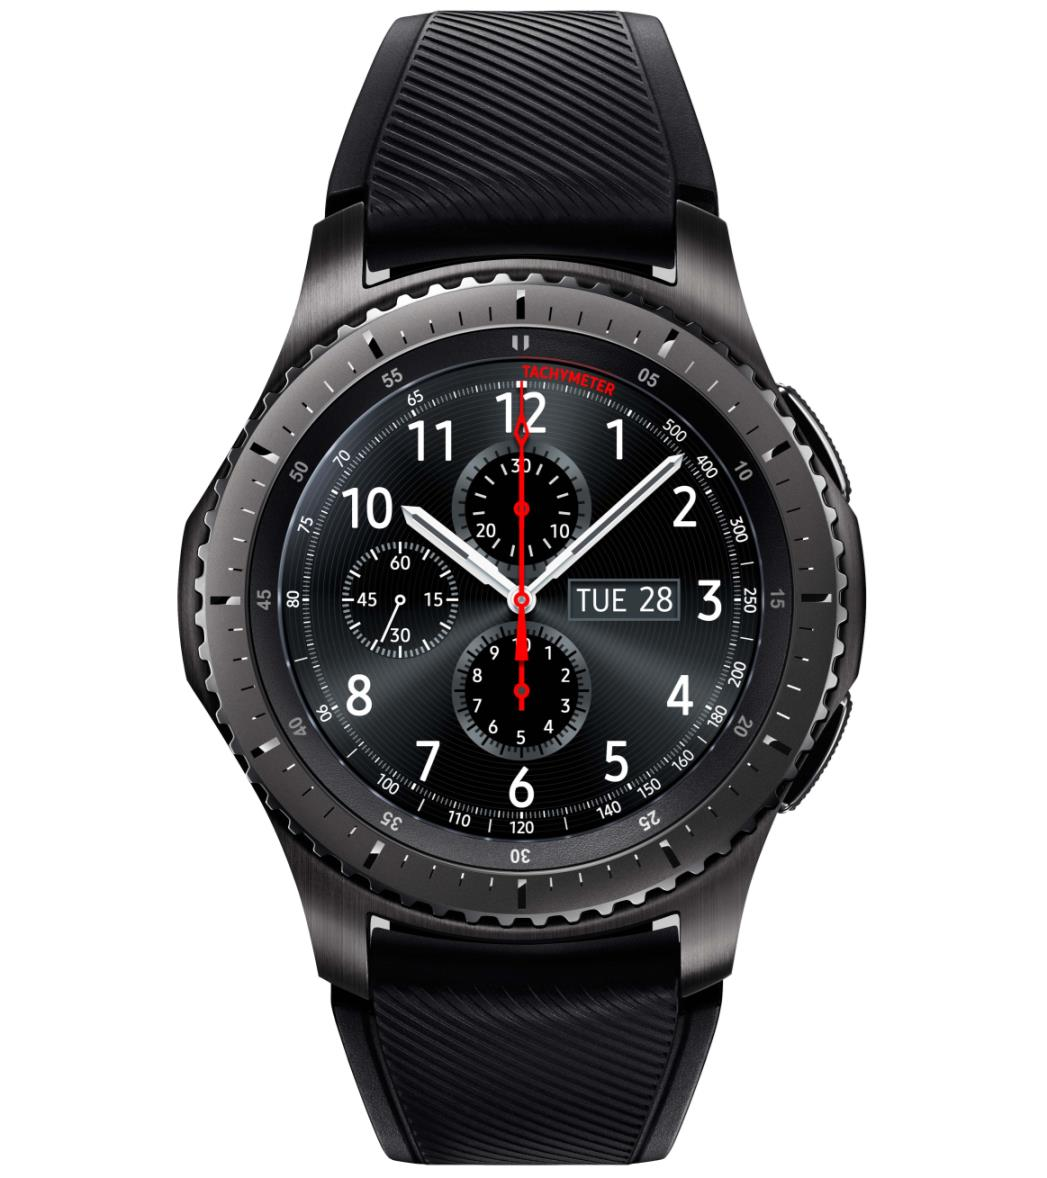 Samsung Gear S3 average battery life